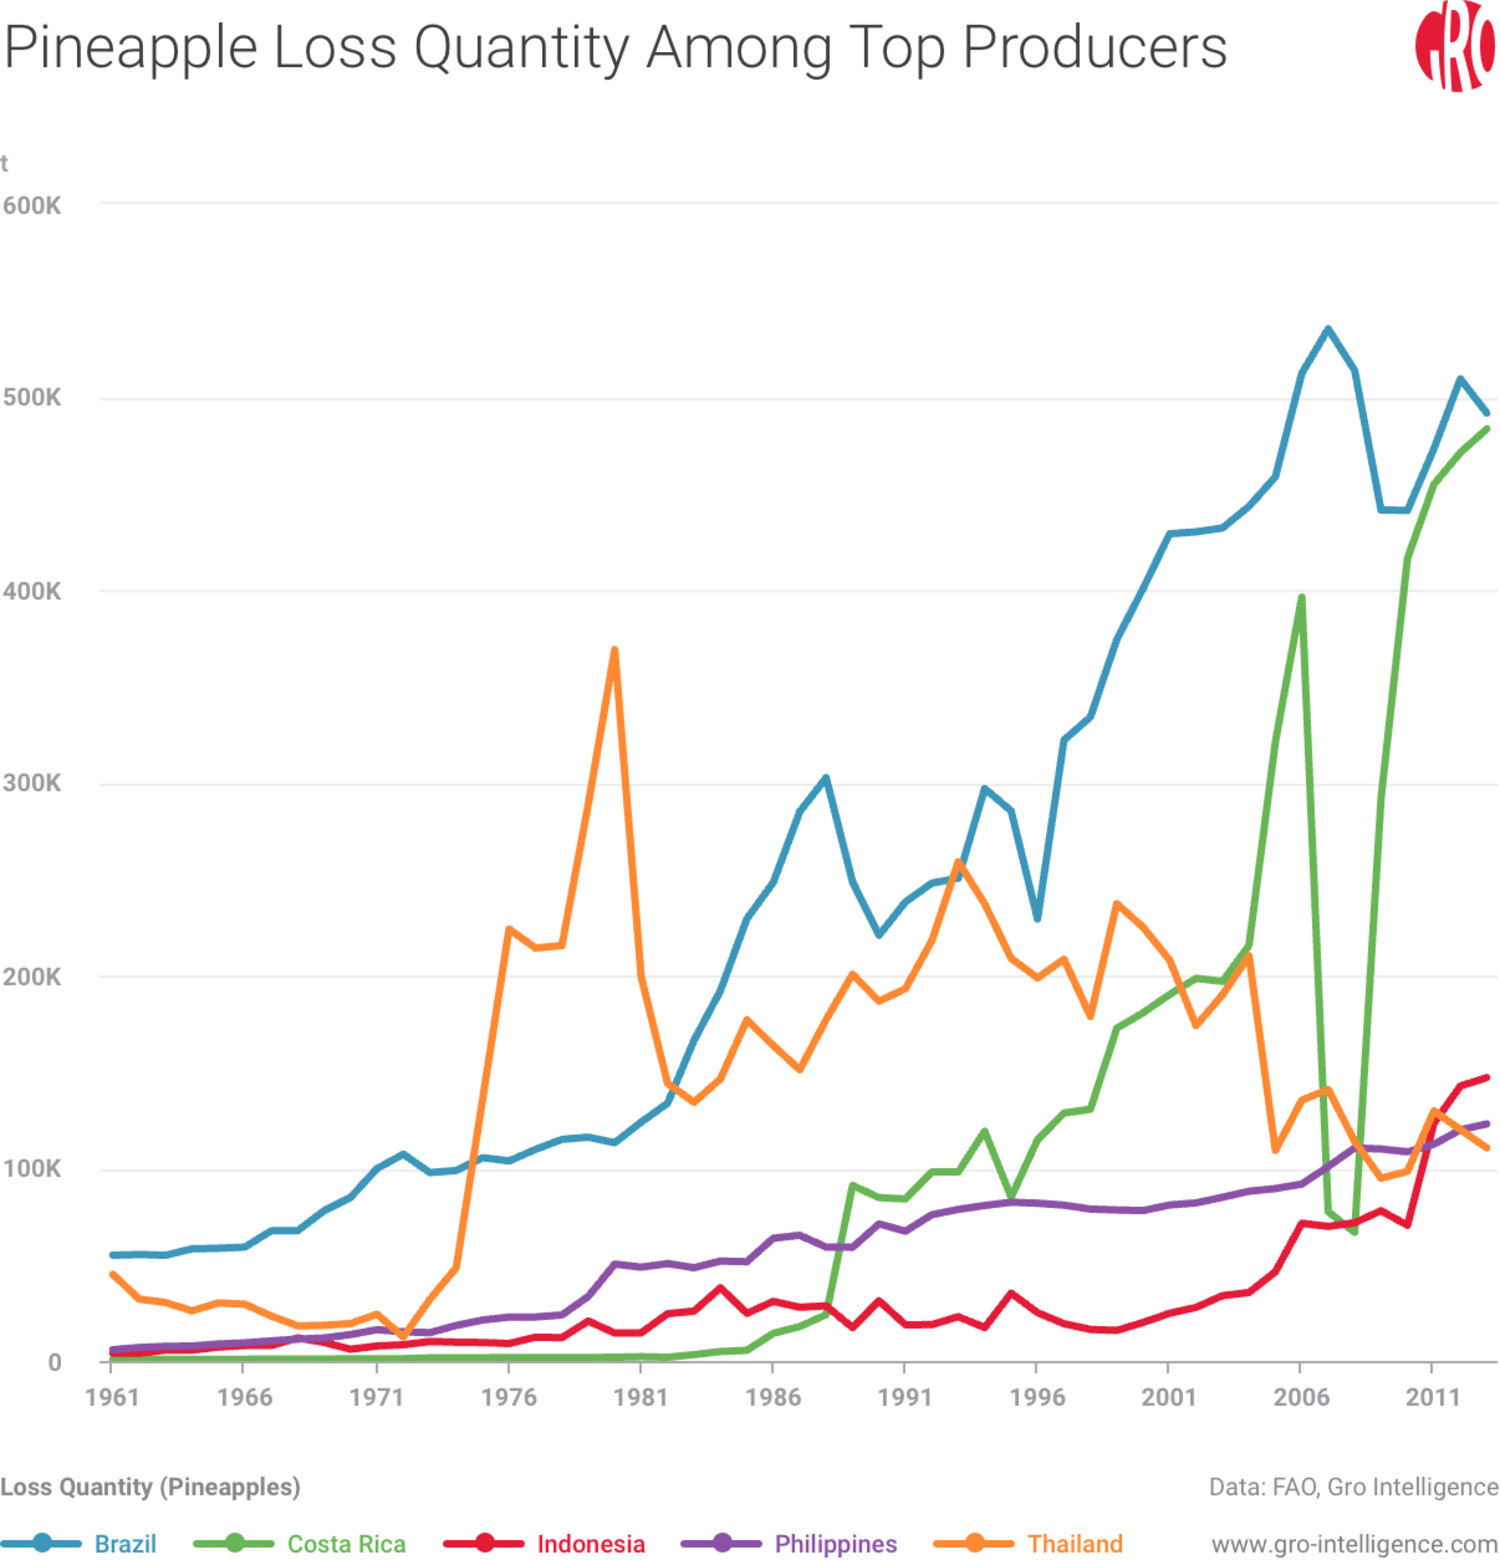 Pineapple Loss Quantity Among Top Producers